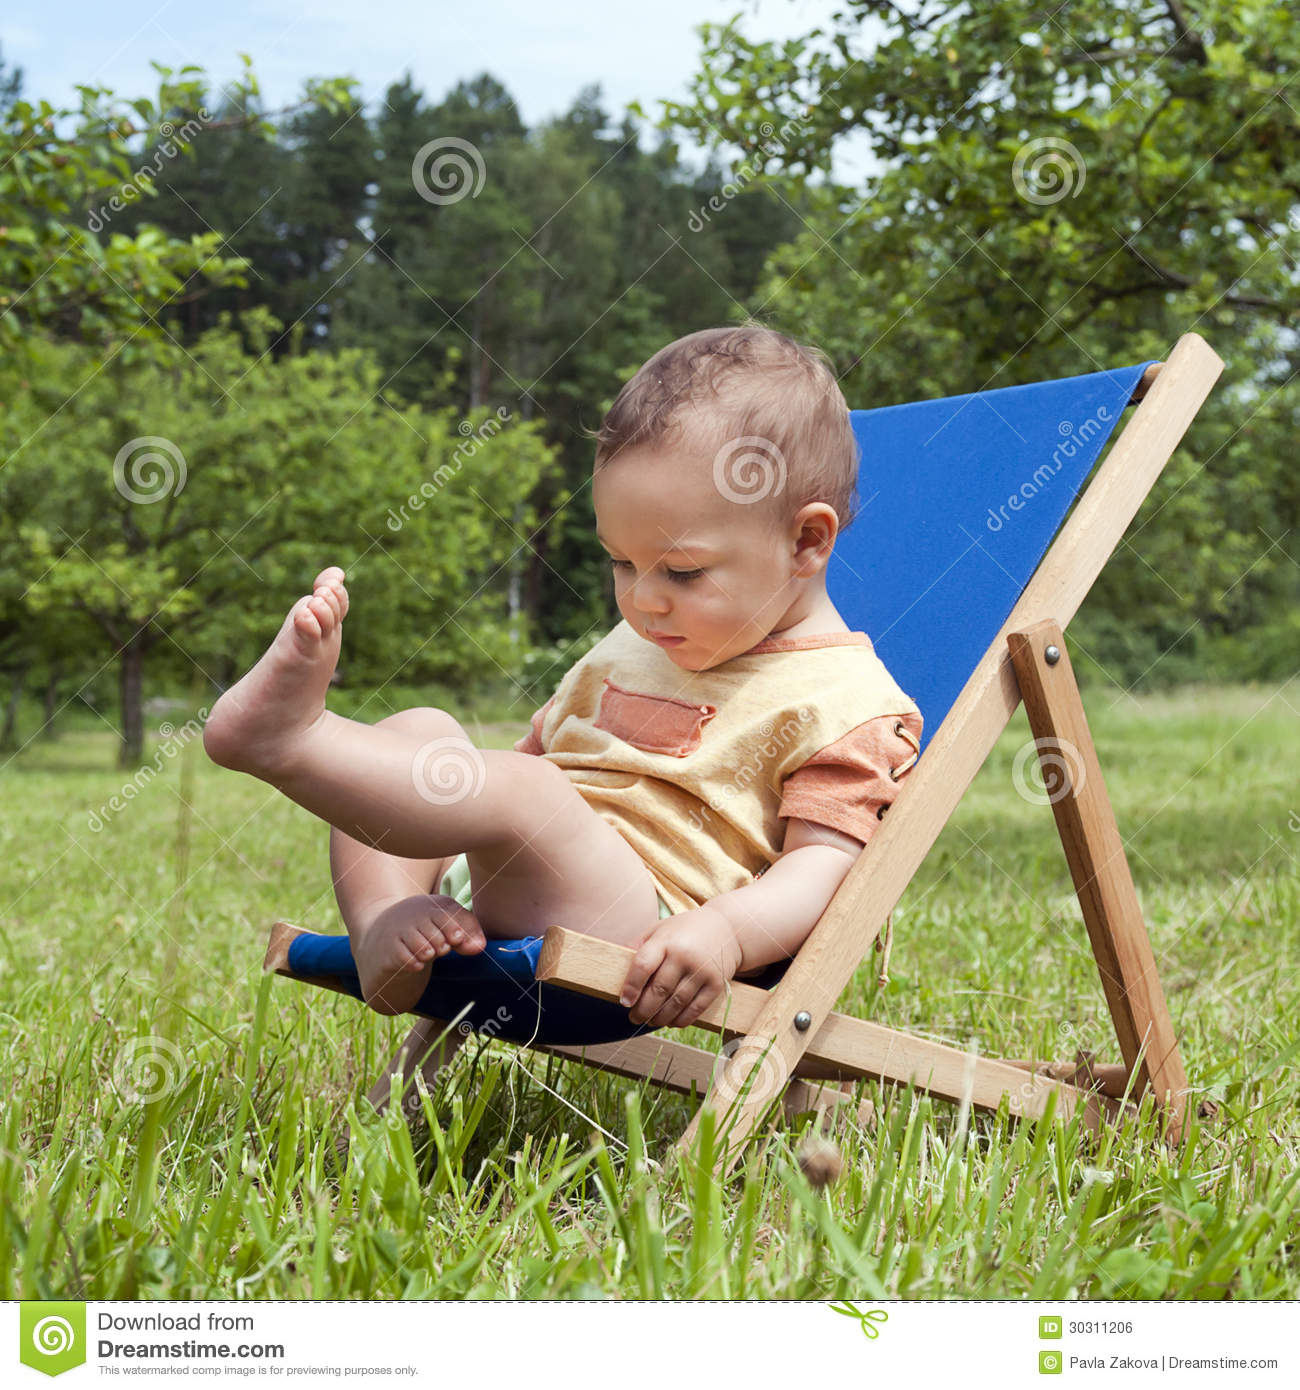 Kids Stock A Wide Selection Of Luxury Premium Cotton: Baby On Deckchair In Garden Stock Photo